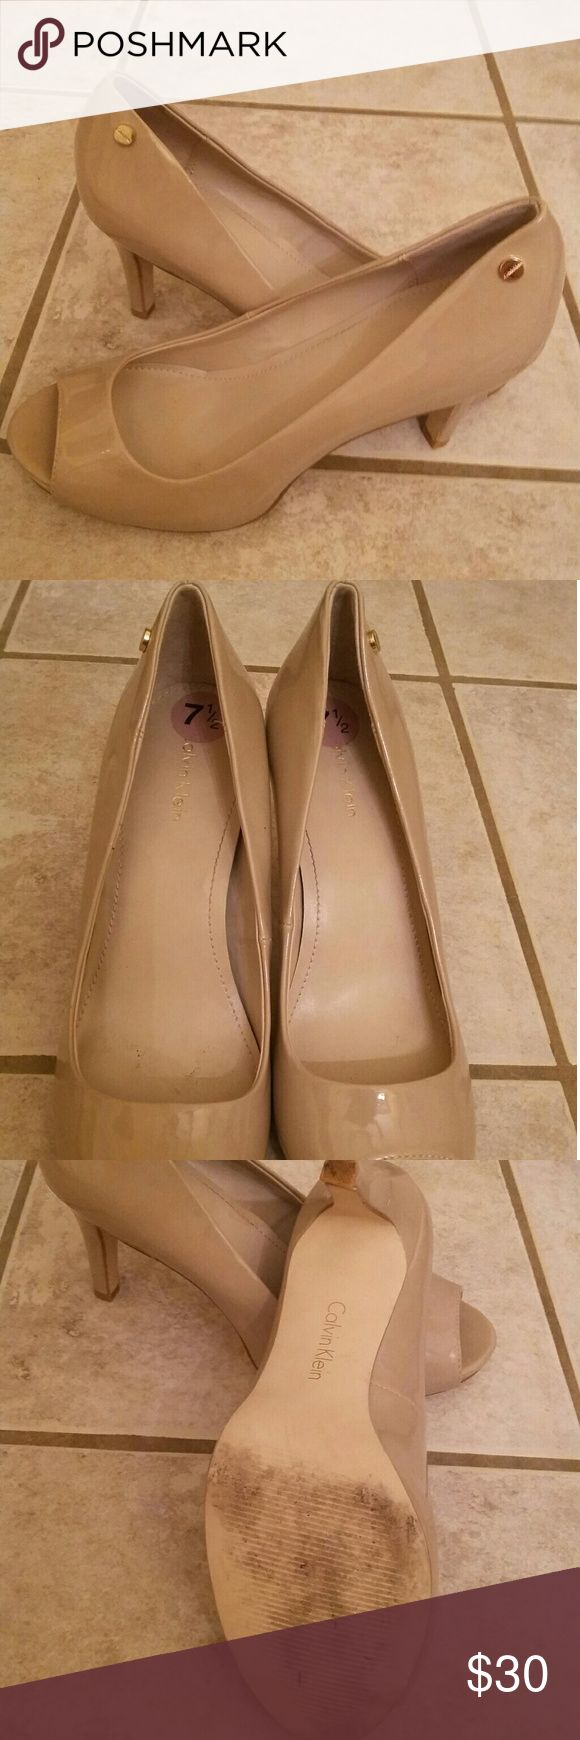 Nude Calvin Klein peep toe pumps Nude Calvin Klein peep toe pumps, only worn once, 3 in heel Calvin Klein Shoes Heels